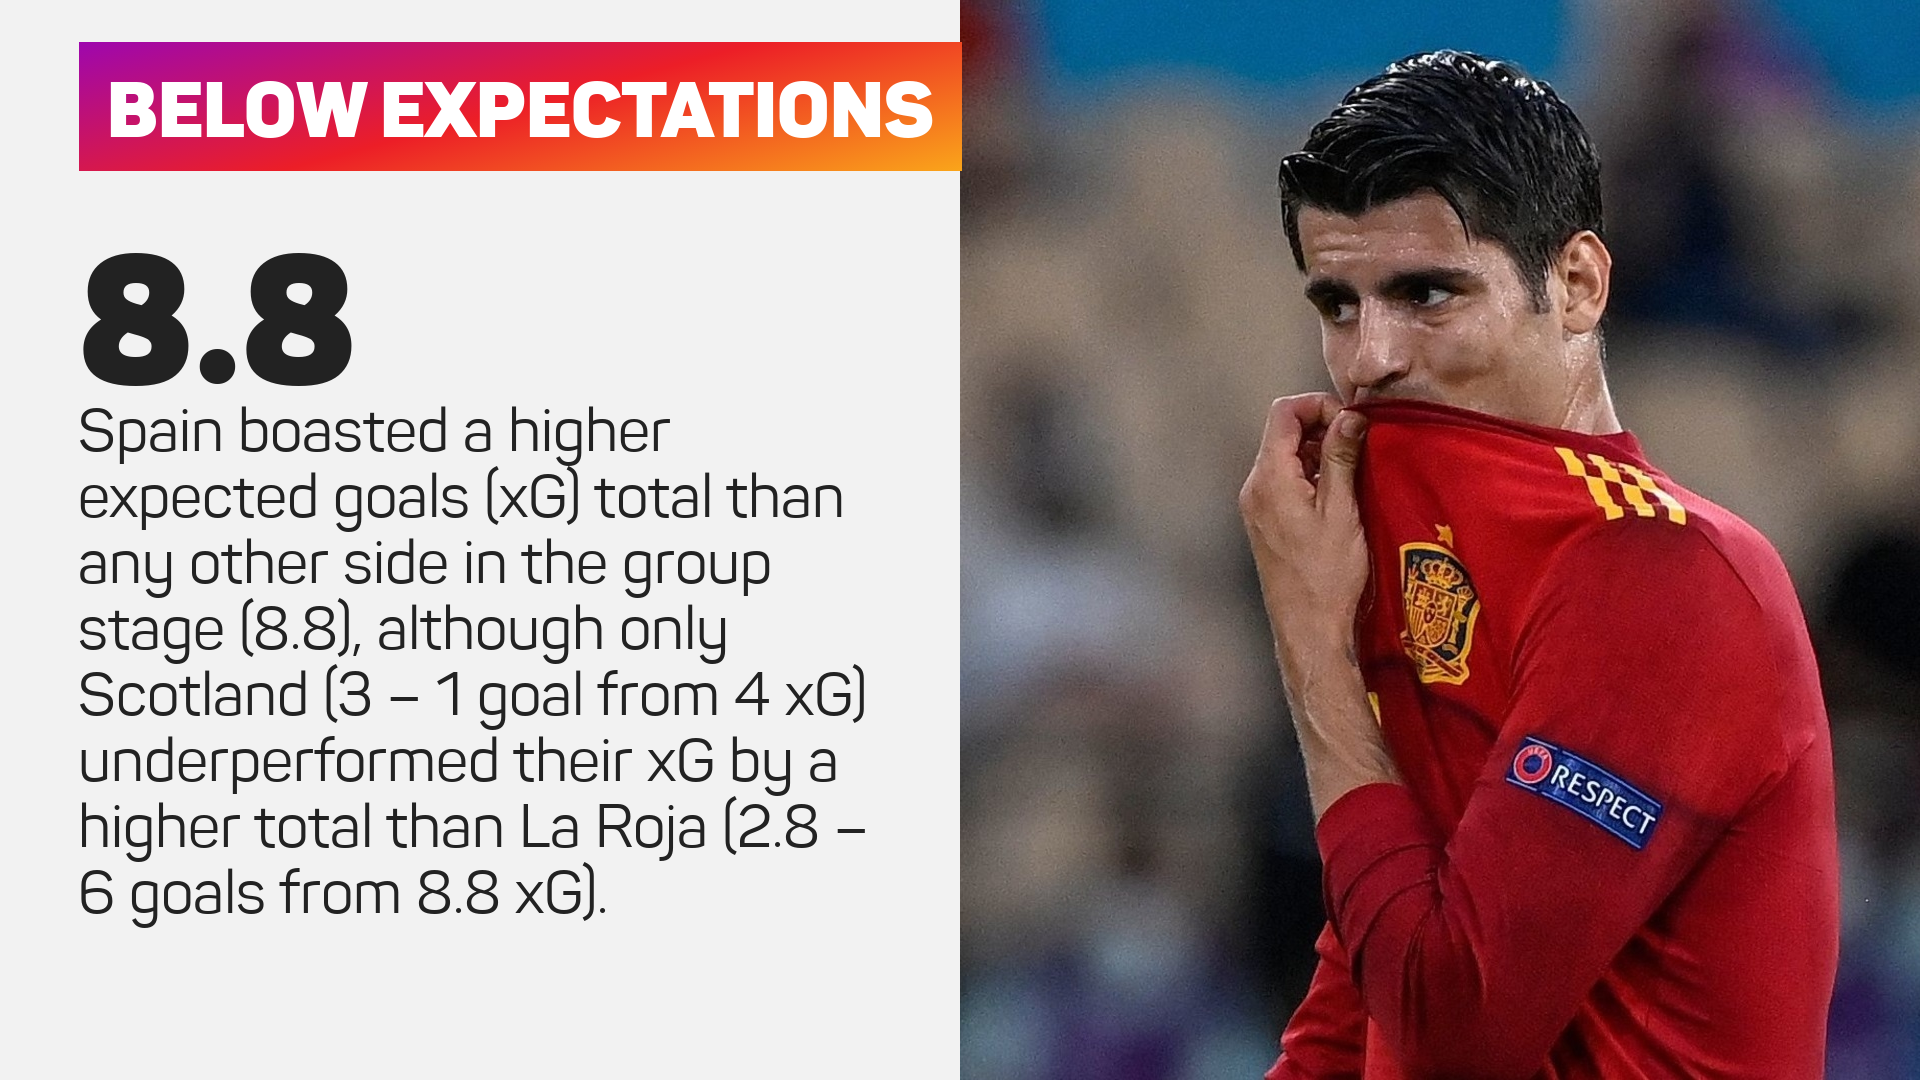 Spain expected goals